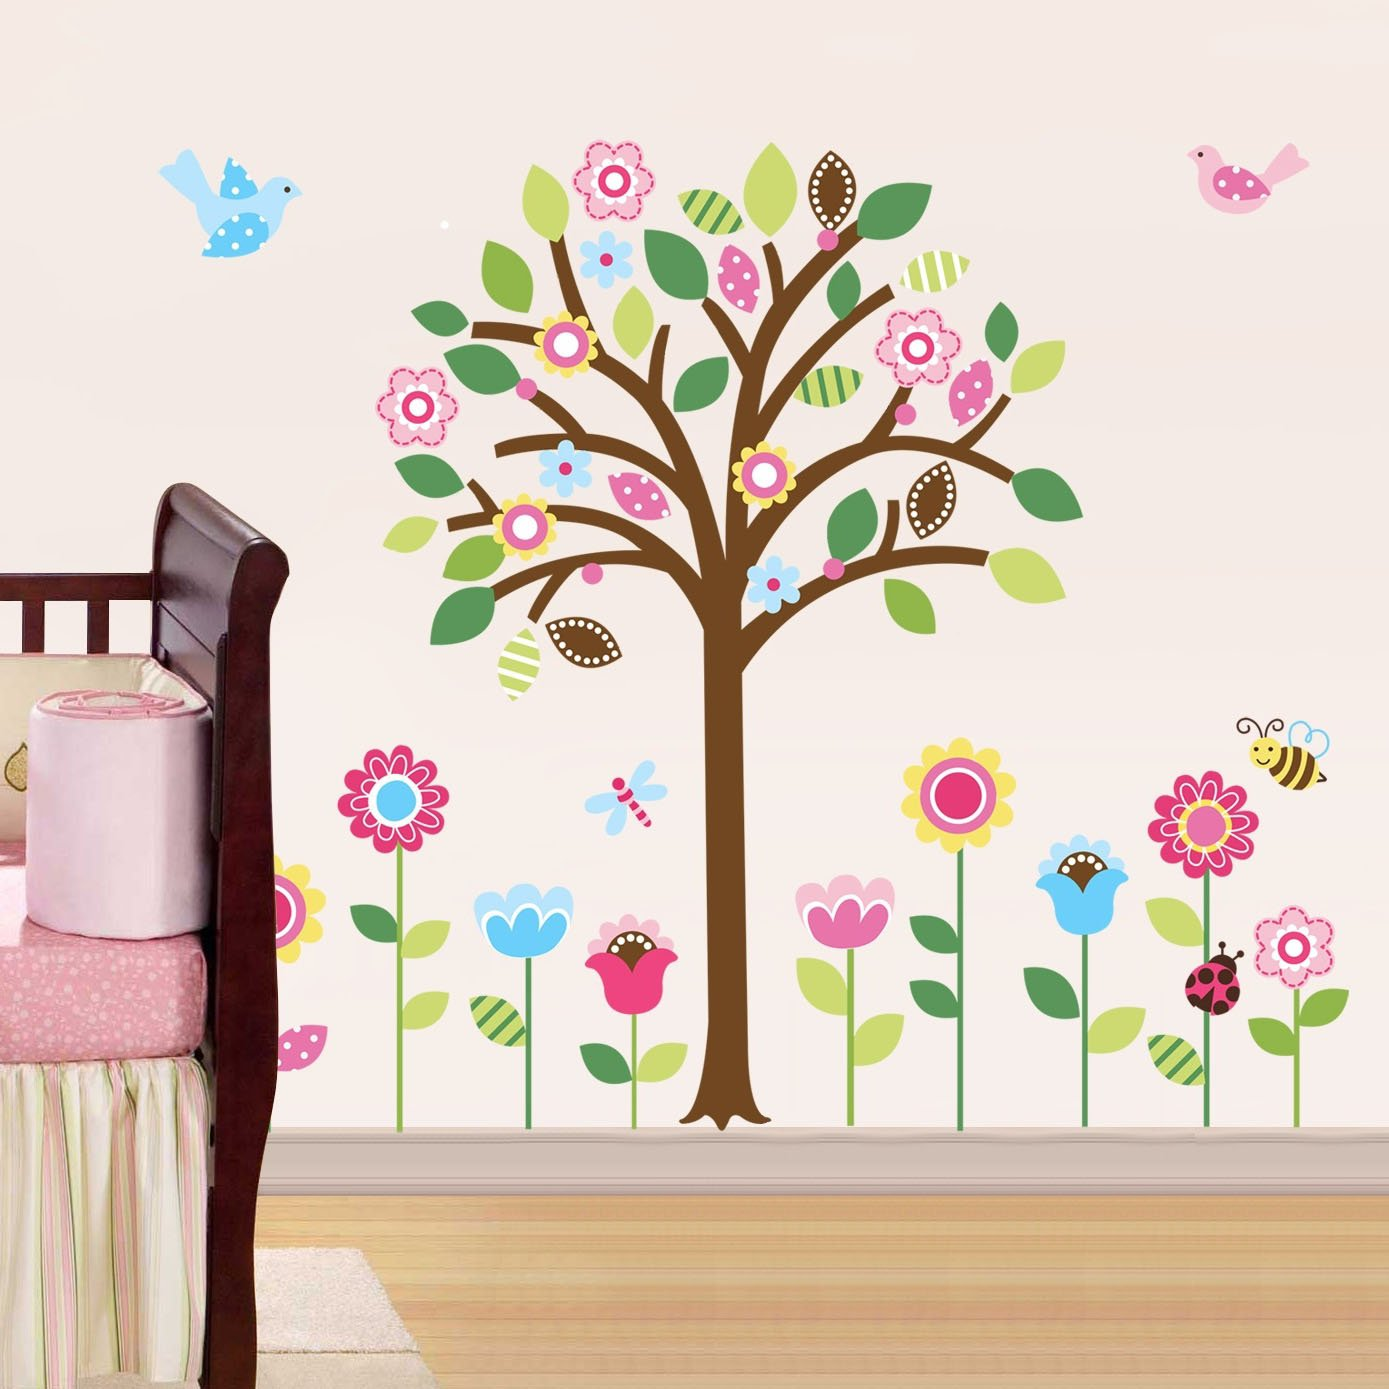 Amazon pretty pastel garden giant peel stick wall art amazon pretty pastel garden giant peel stick wall art sticker decals baby amipublicfo Gallery